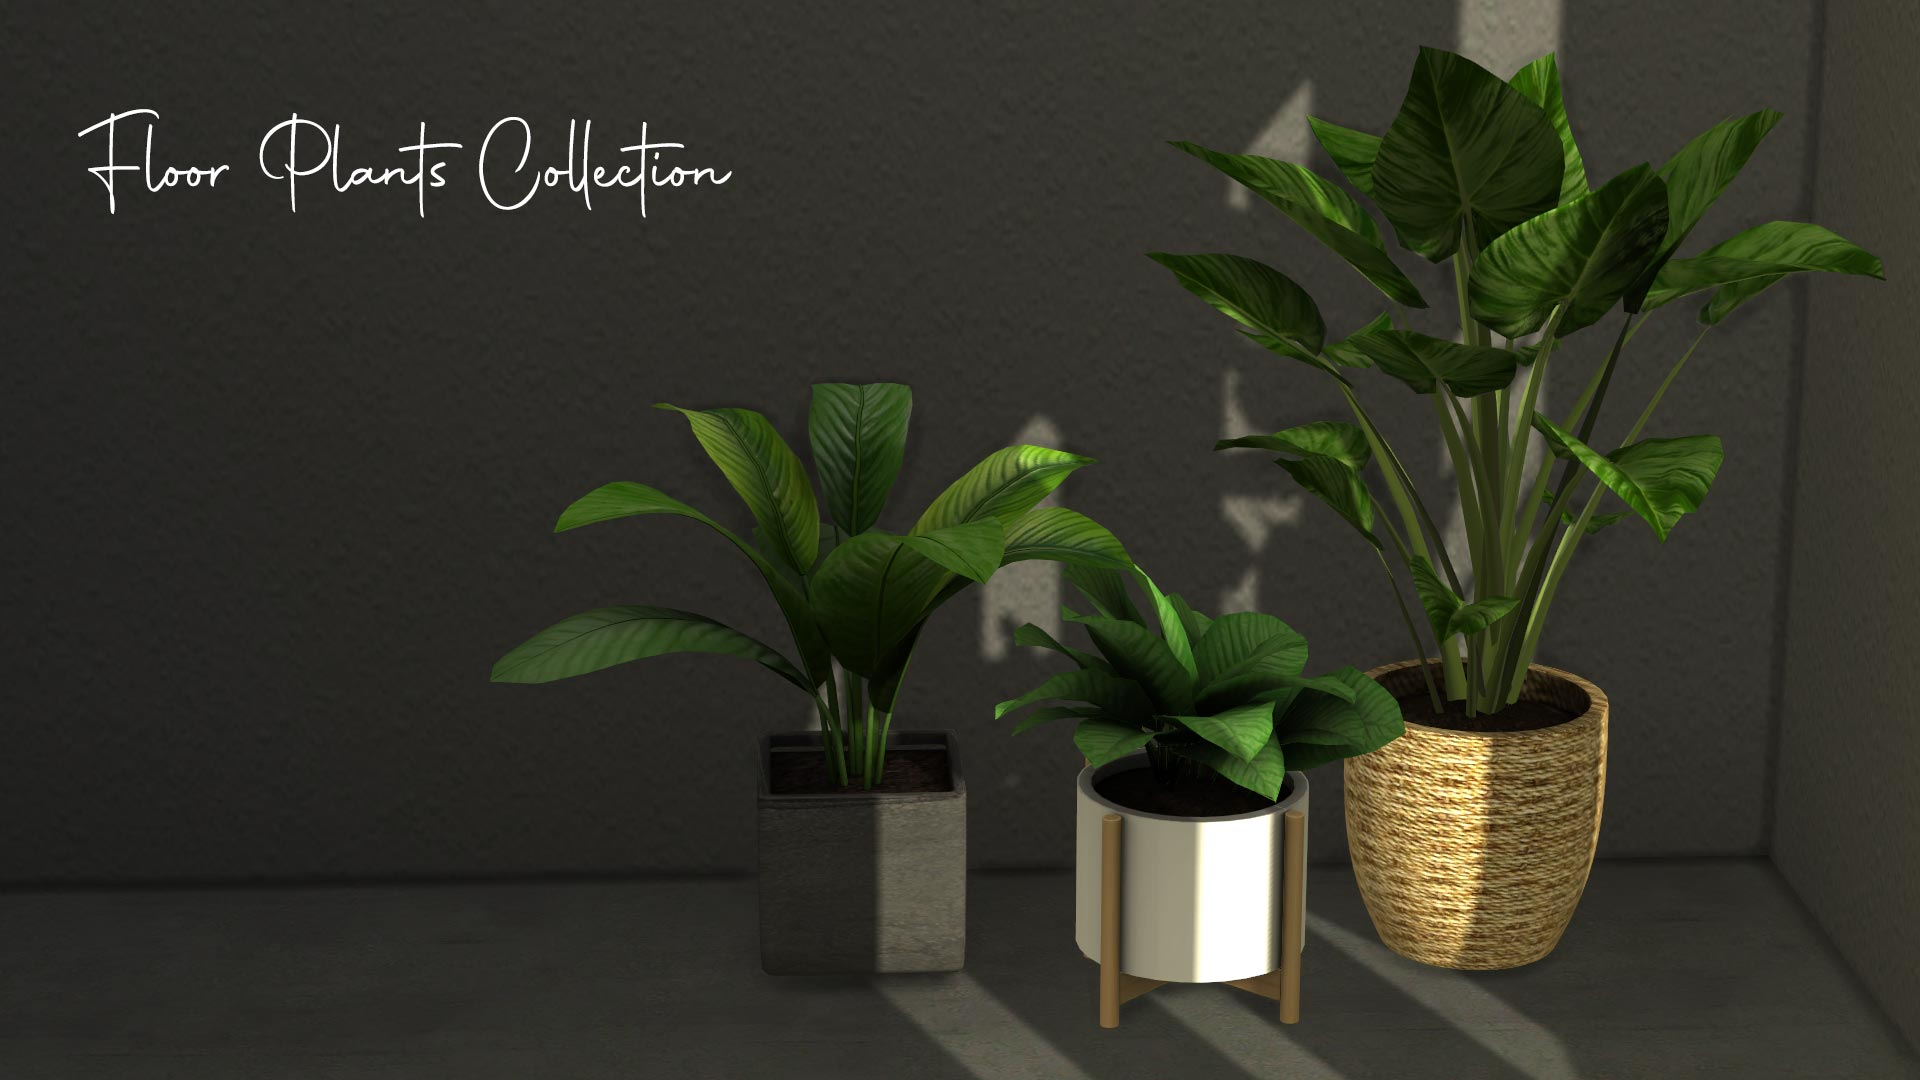 Floor Plants Collection, high quality sims 4 cc, sunkissedlilacs, free sims 4 furniture, sims 4 custom content,